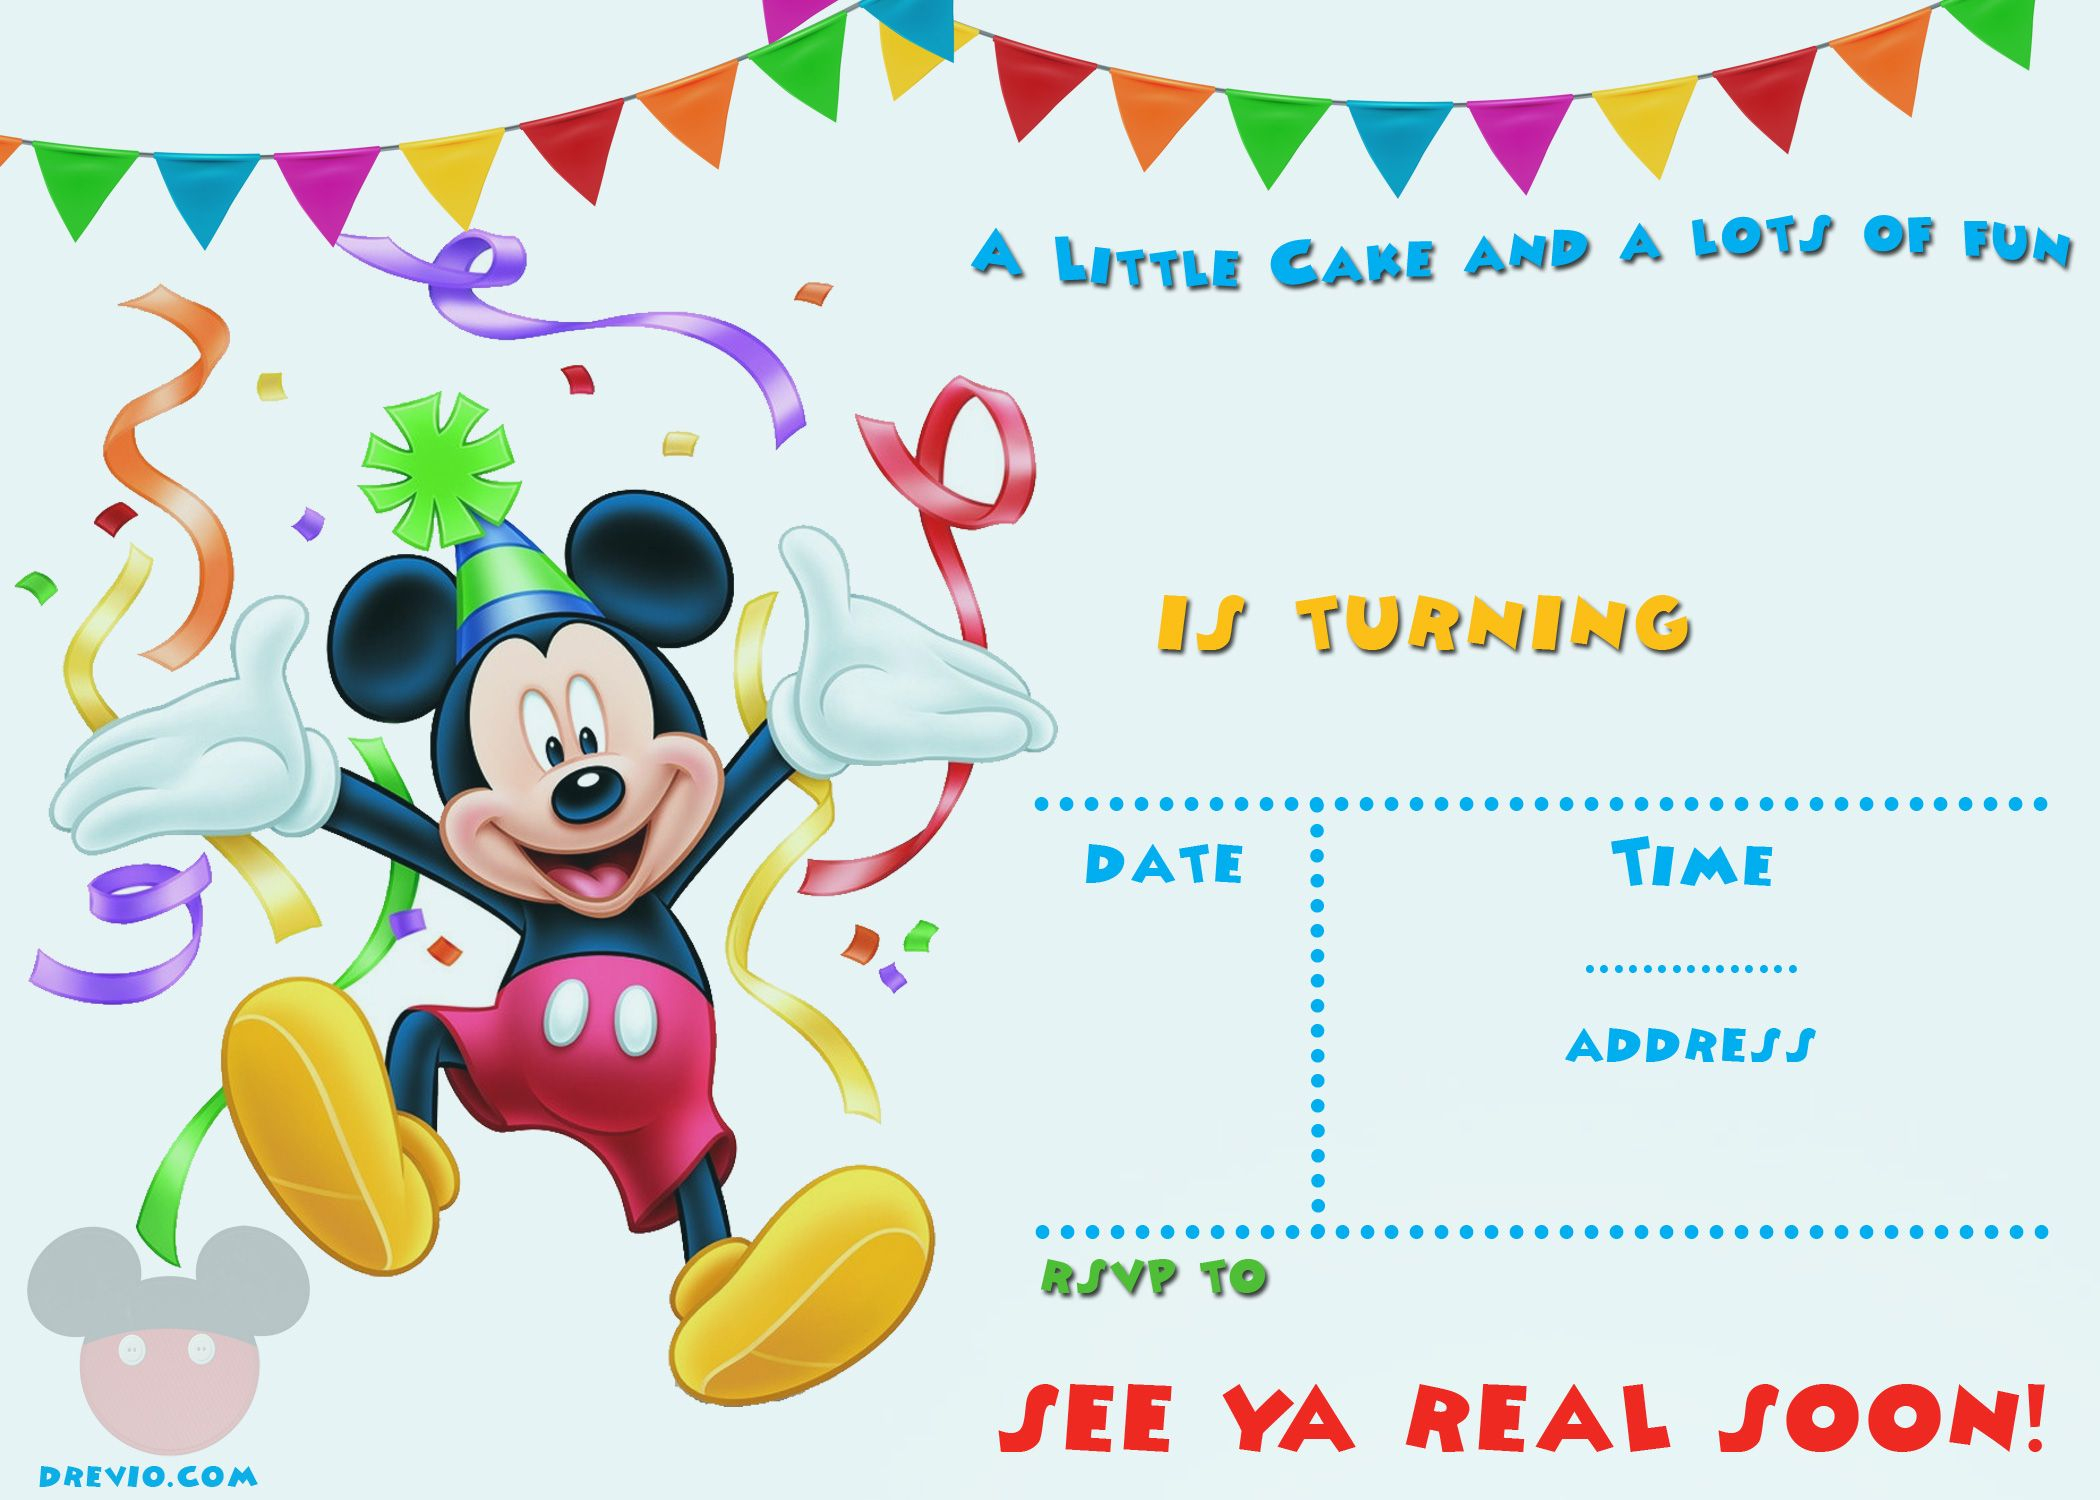 Free Printable Mickey Mouse Party Invitation | Free Printable - Free Mickey Mouse Printable Templates